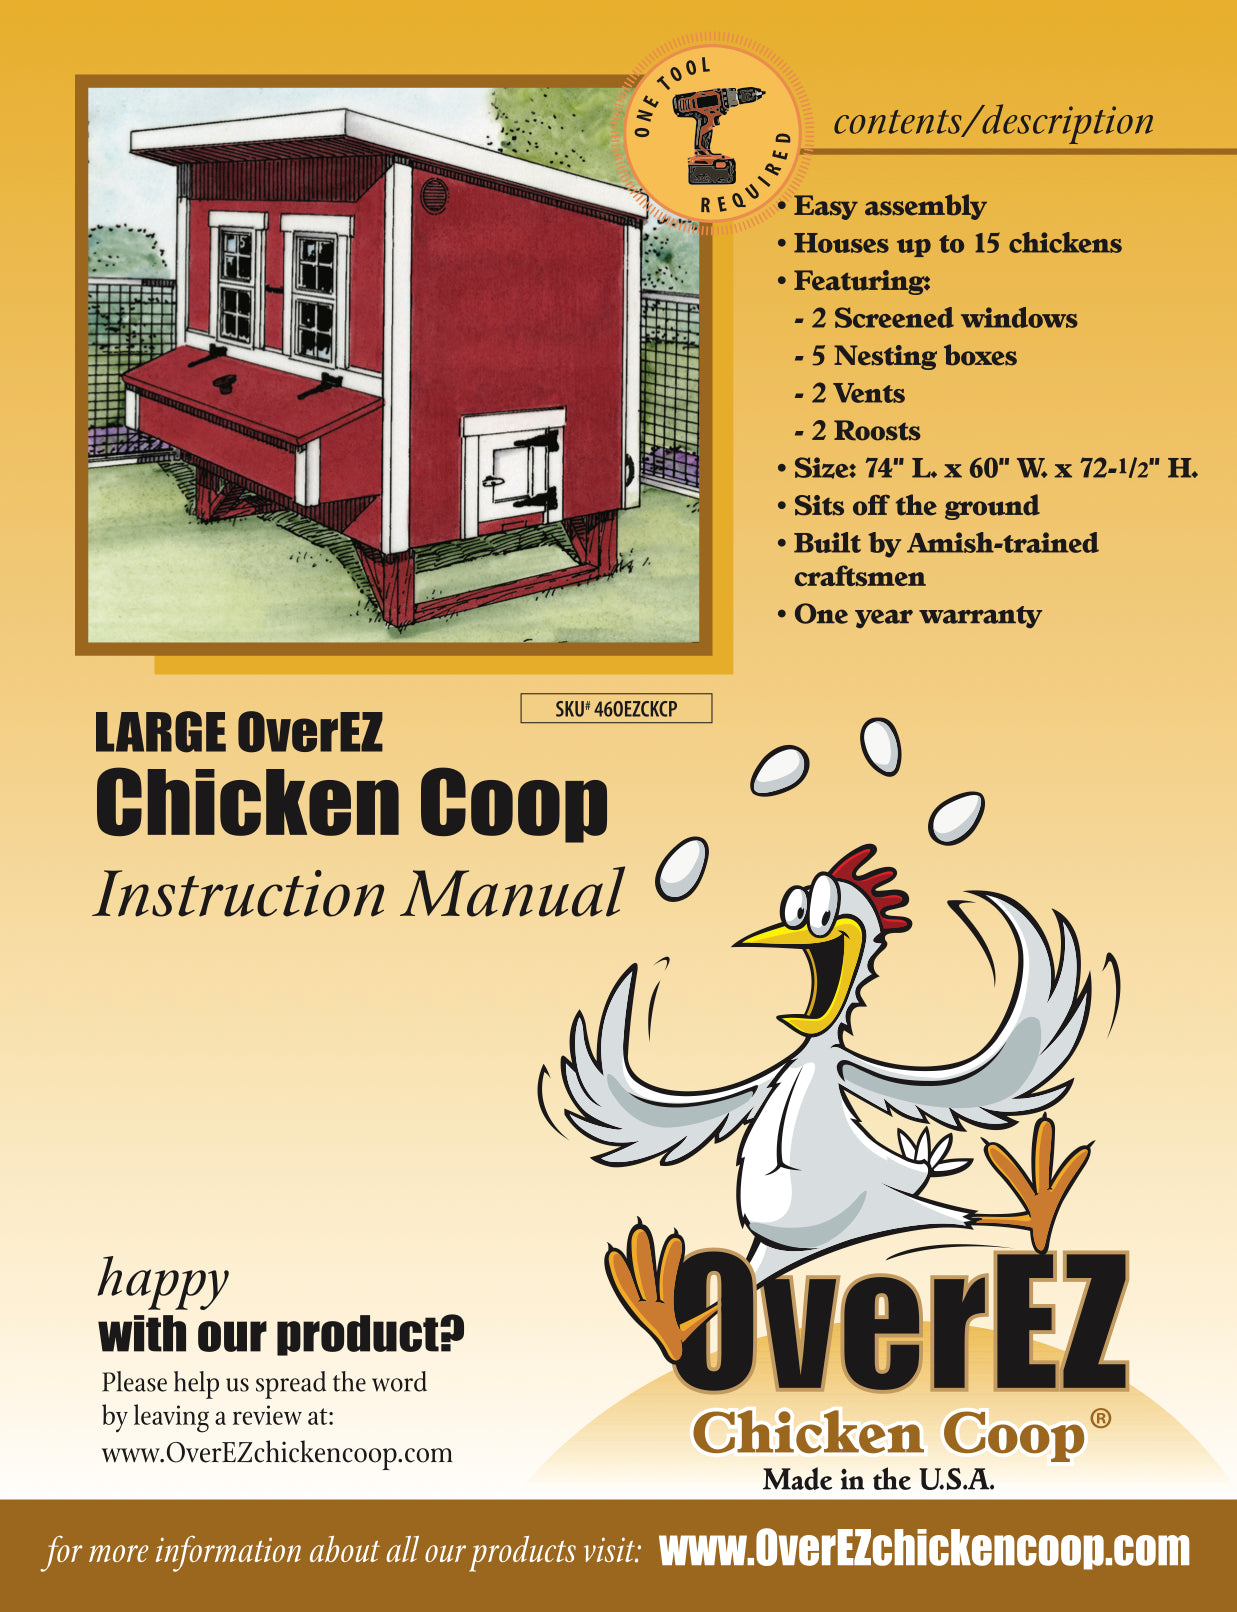 Large OverEZ Chicken Coop Instructions